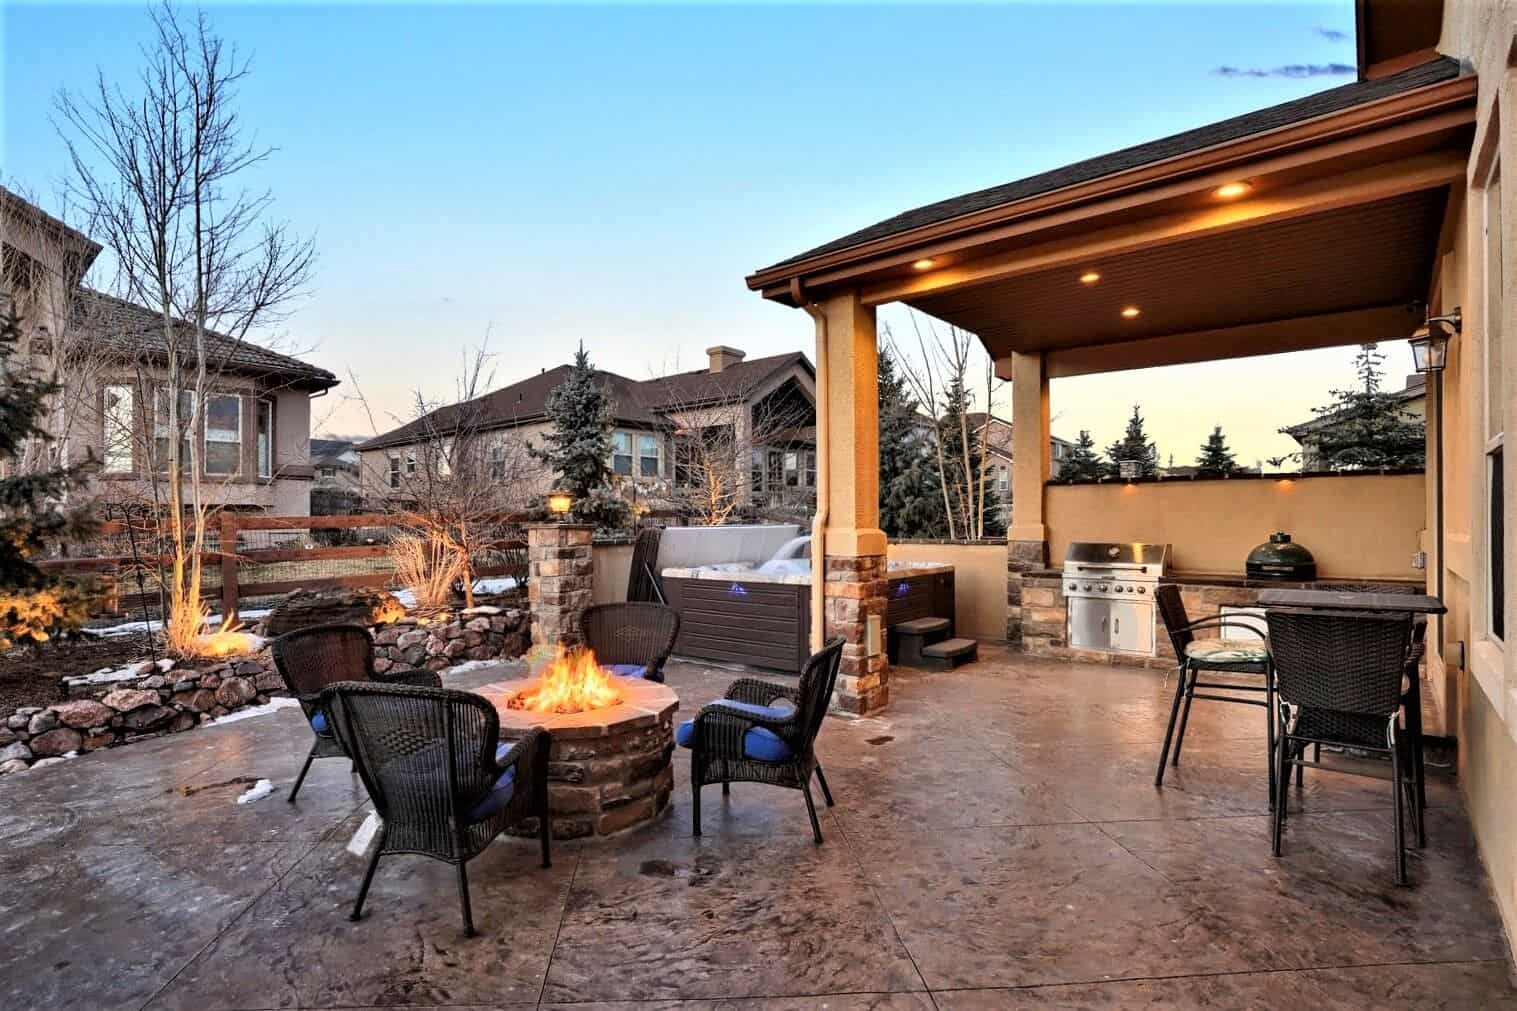 Backyard Patio with Built-In BBQ and Gas Plumbed Fire Pit